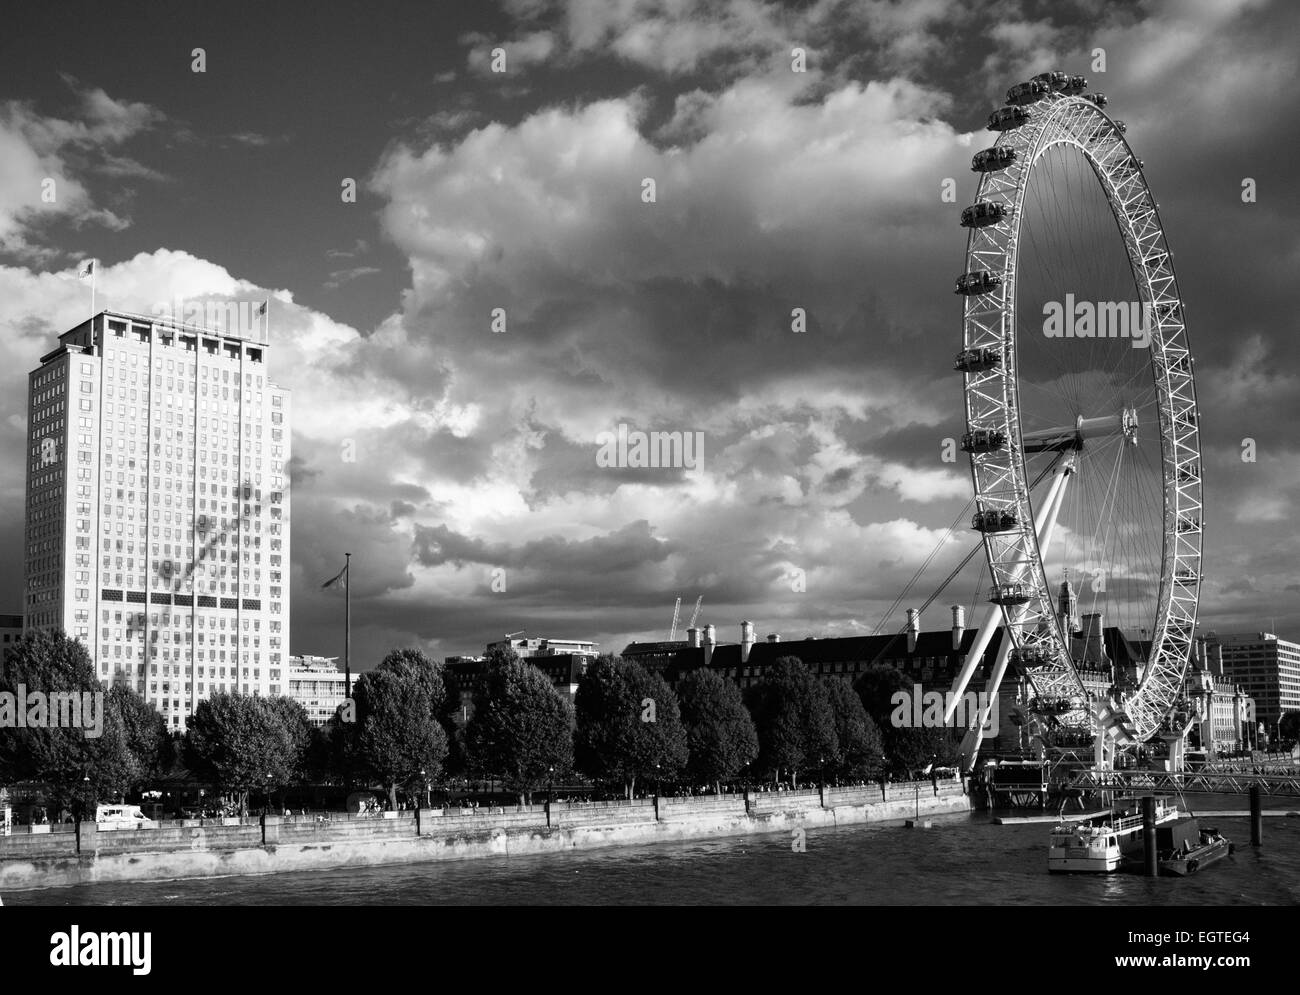 The London Eye, The Millennium Wheel in black and white - Stock Image